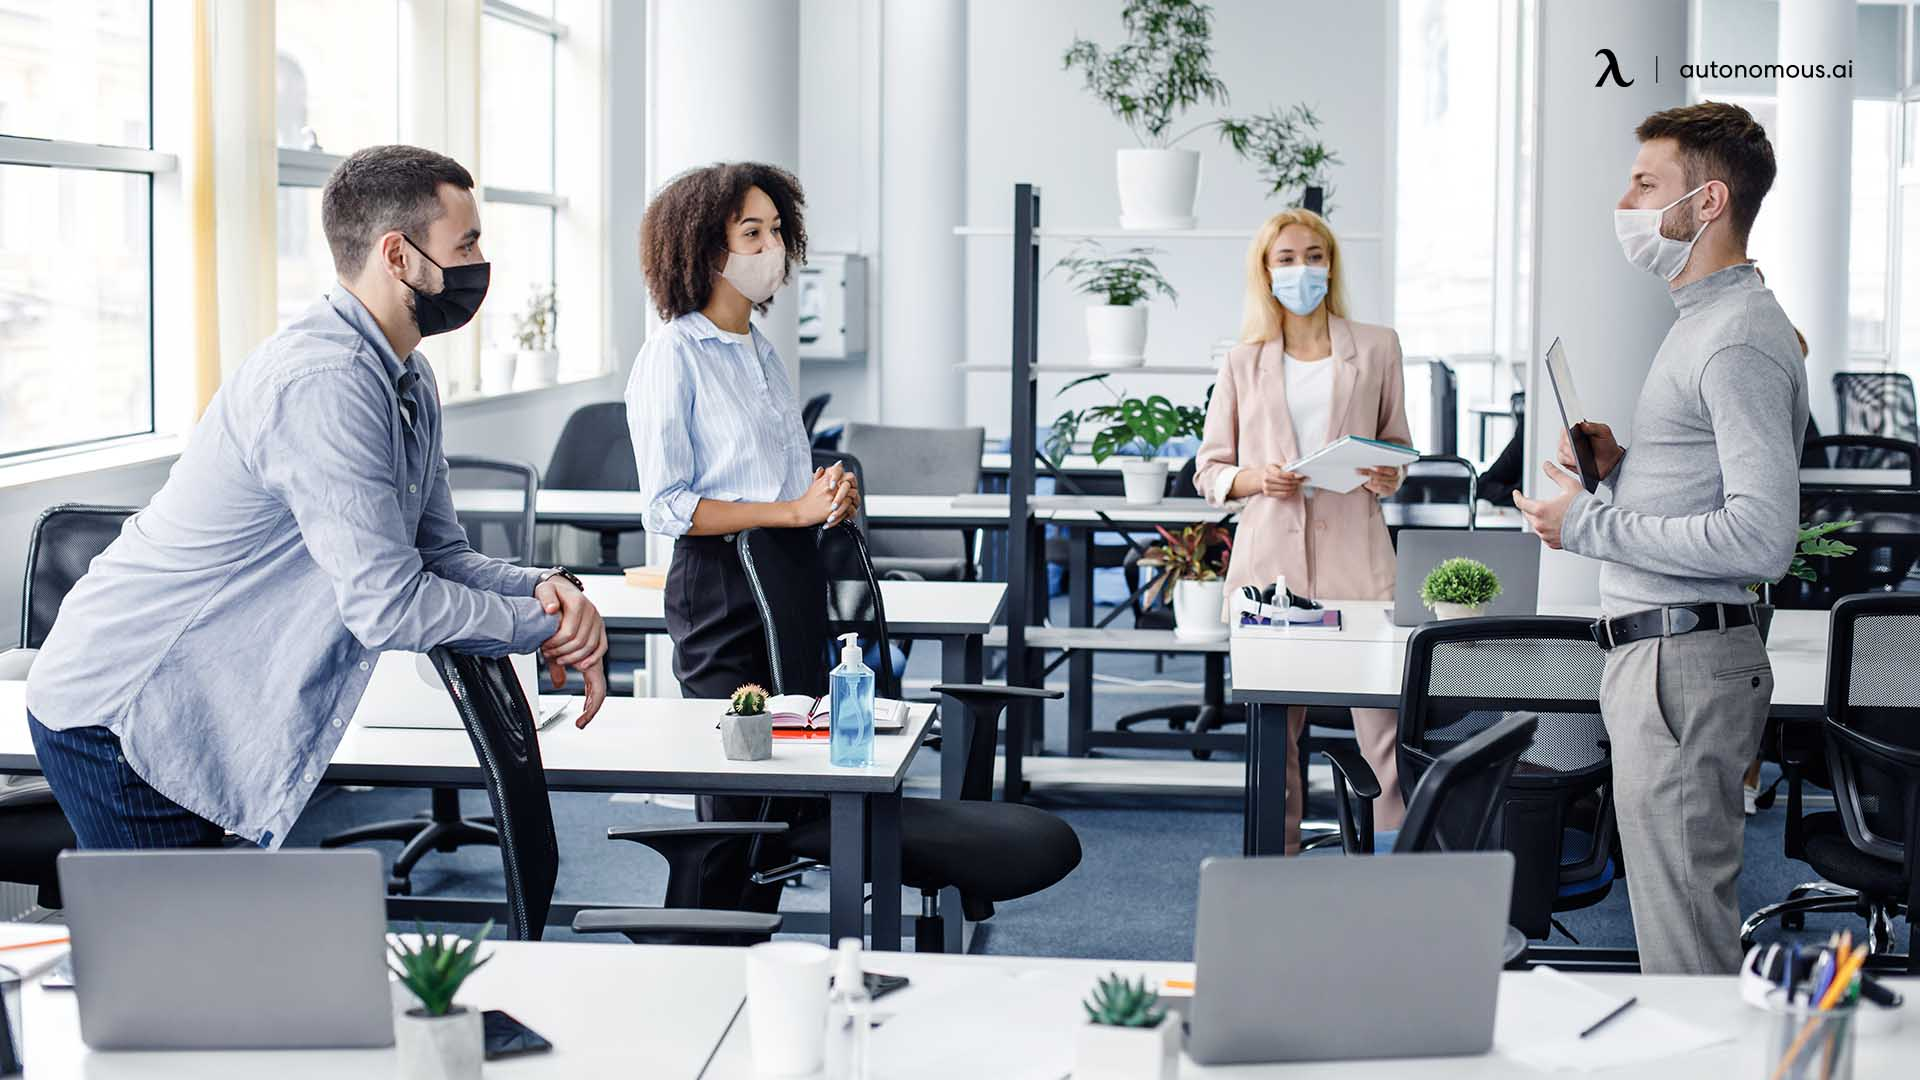 Top 5 Hybrid Workplace Design Considerations